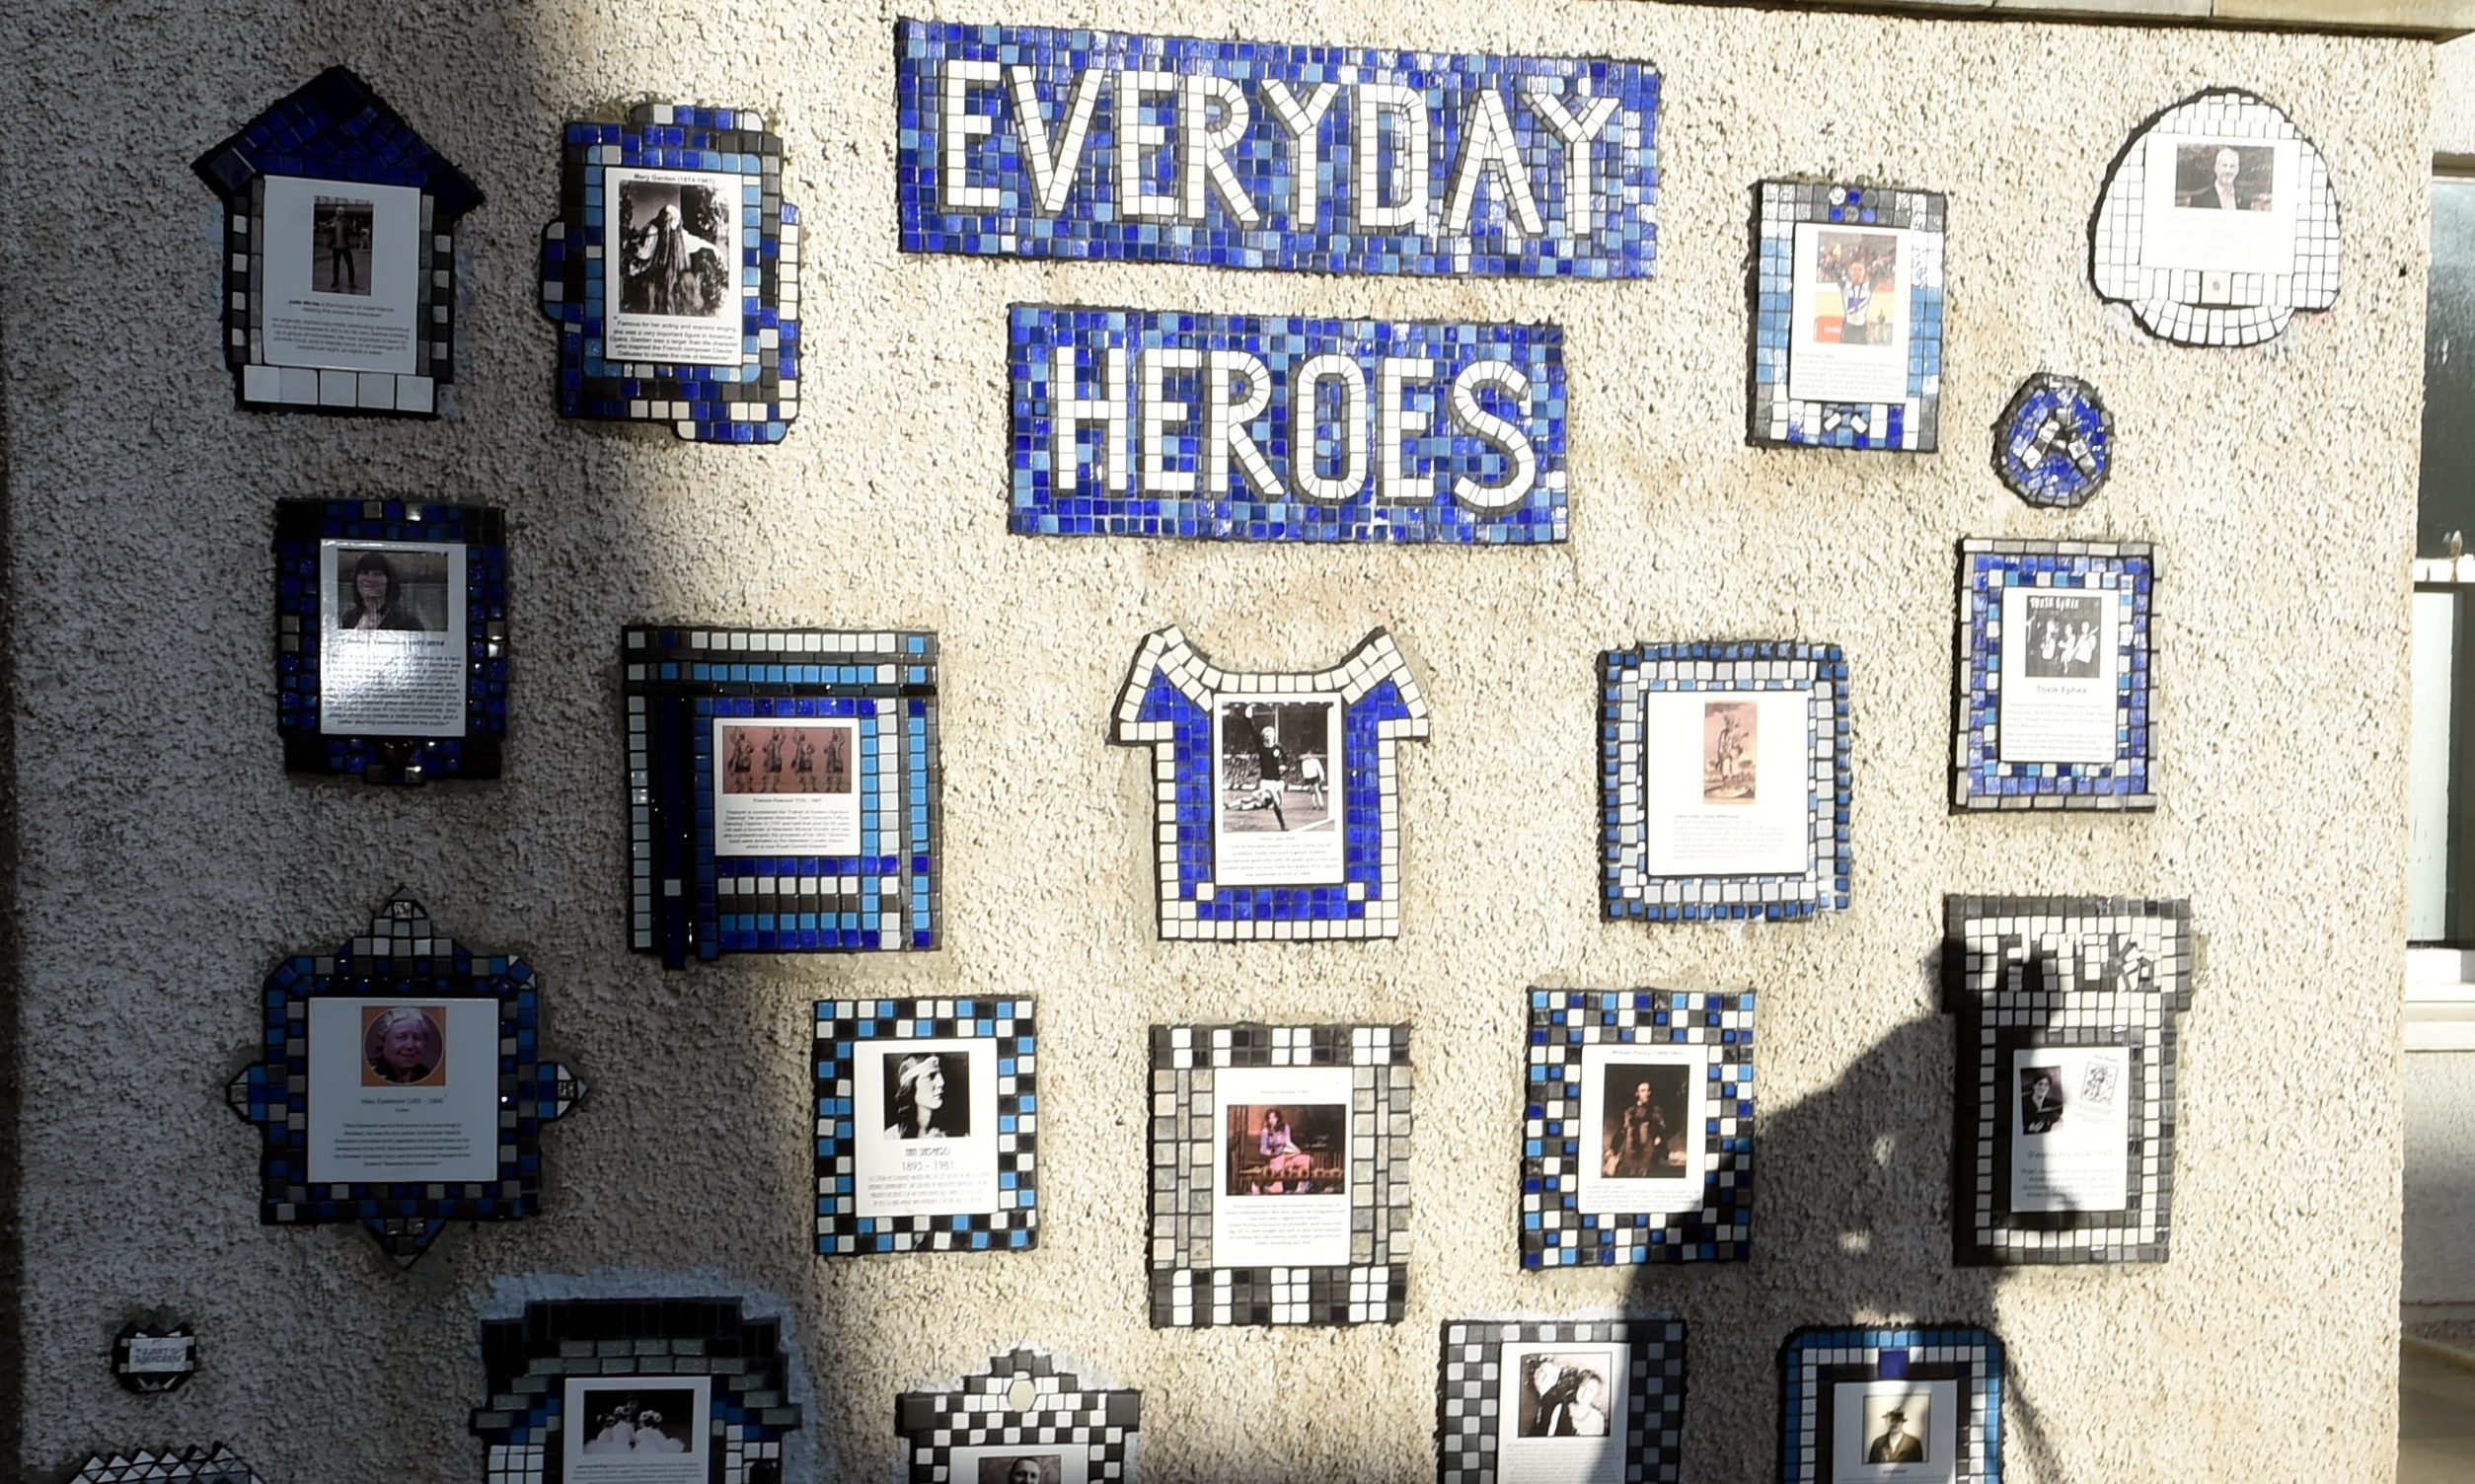 The updated Everyday Heroes mural on Flourmill Lane